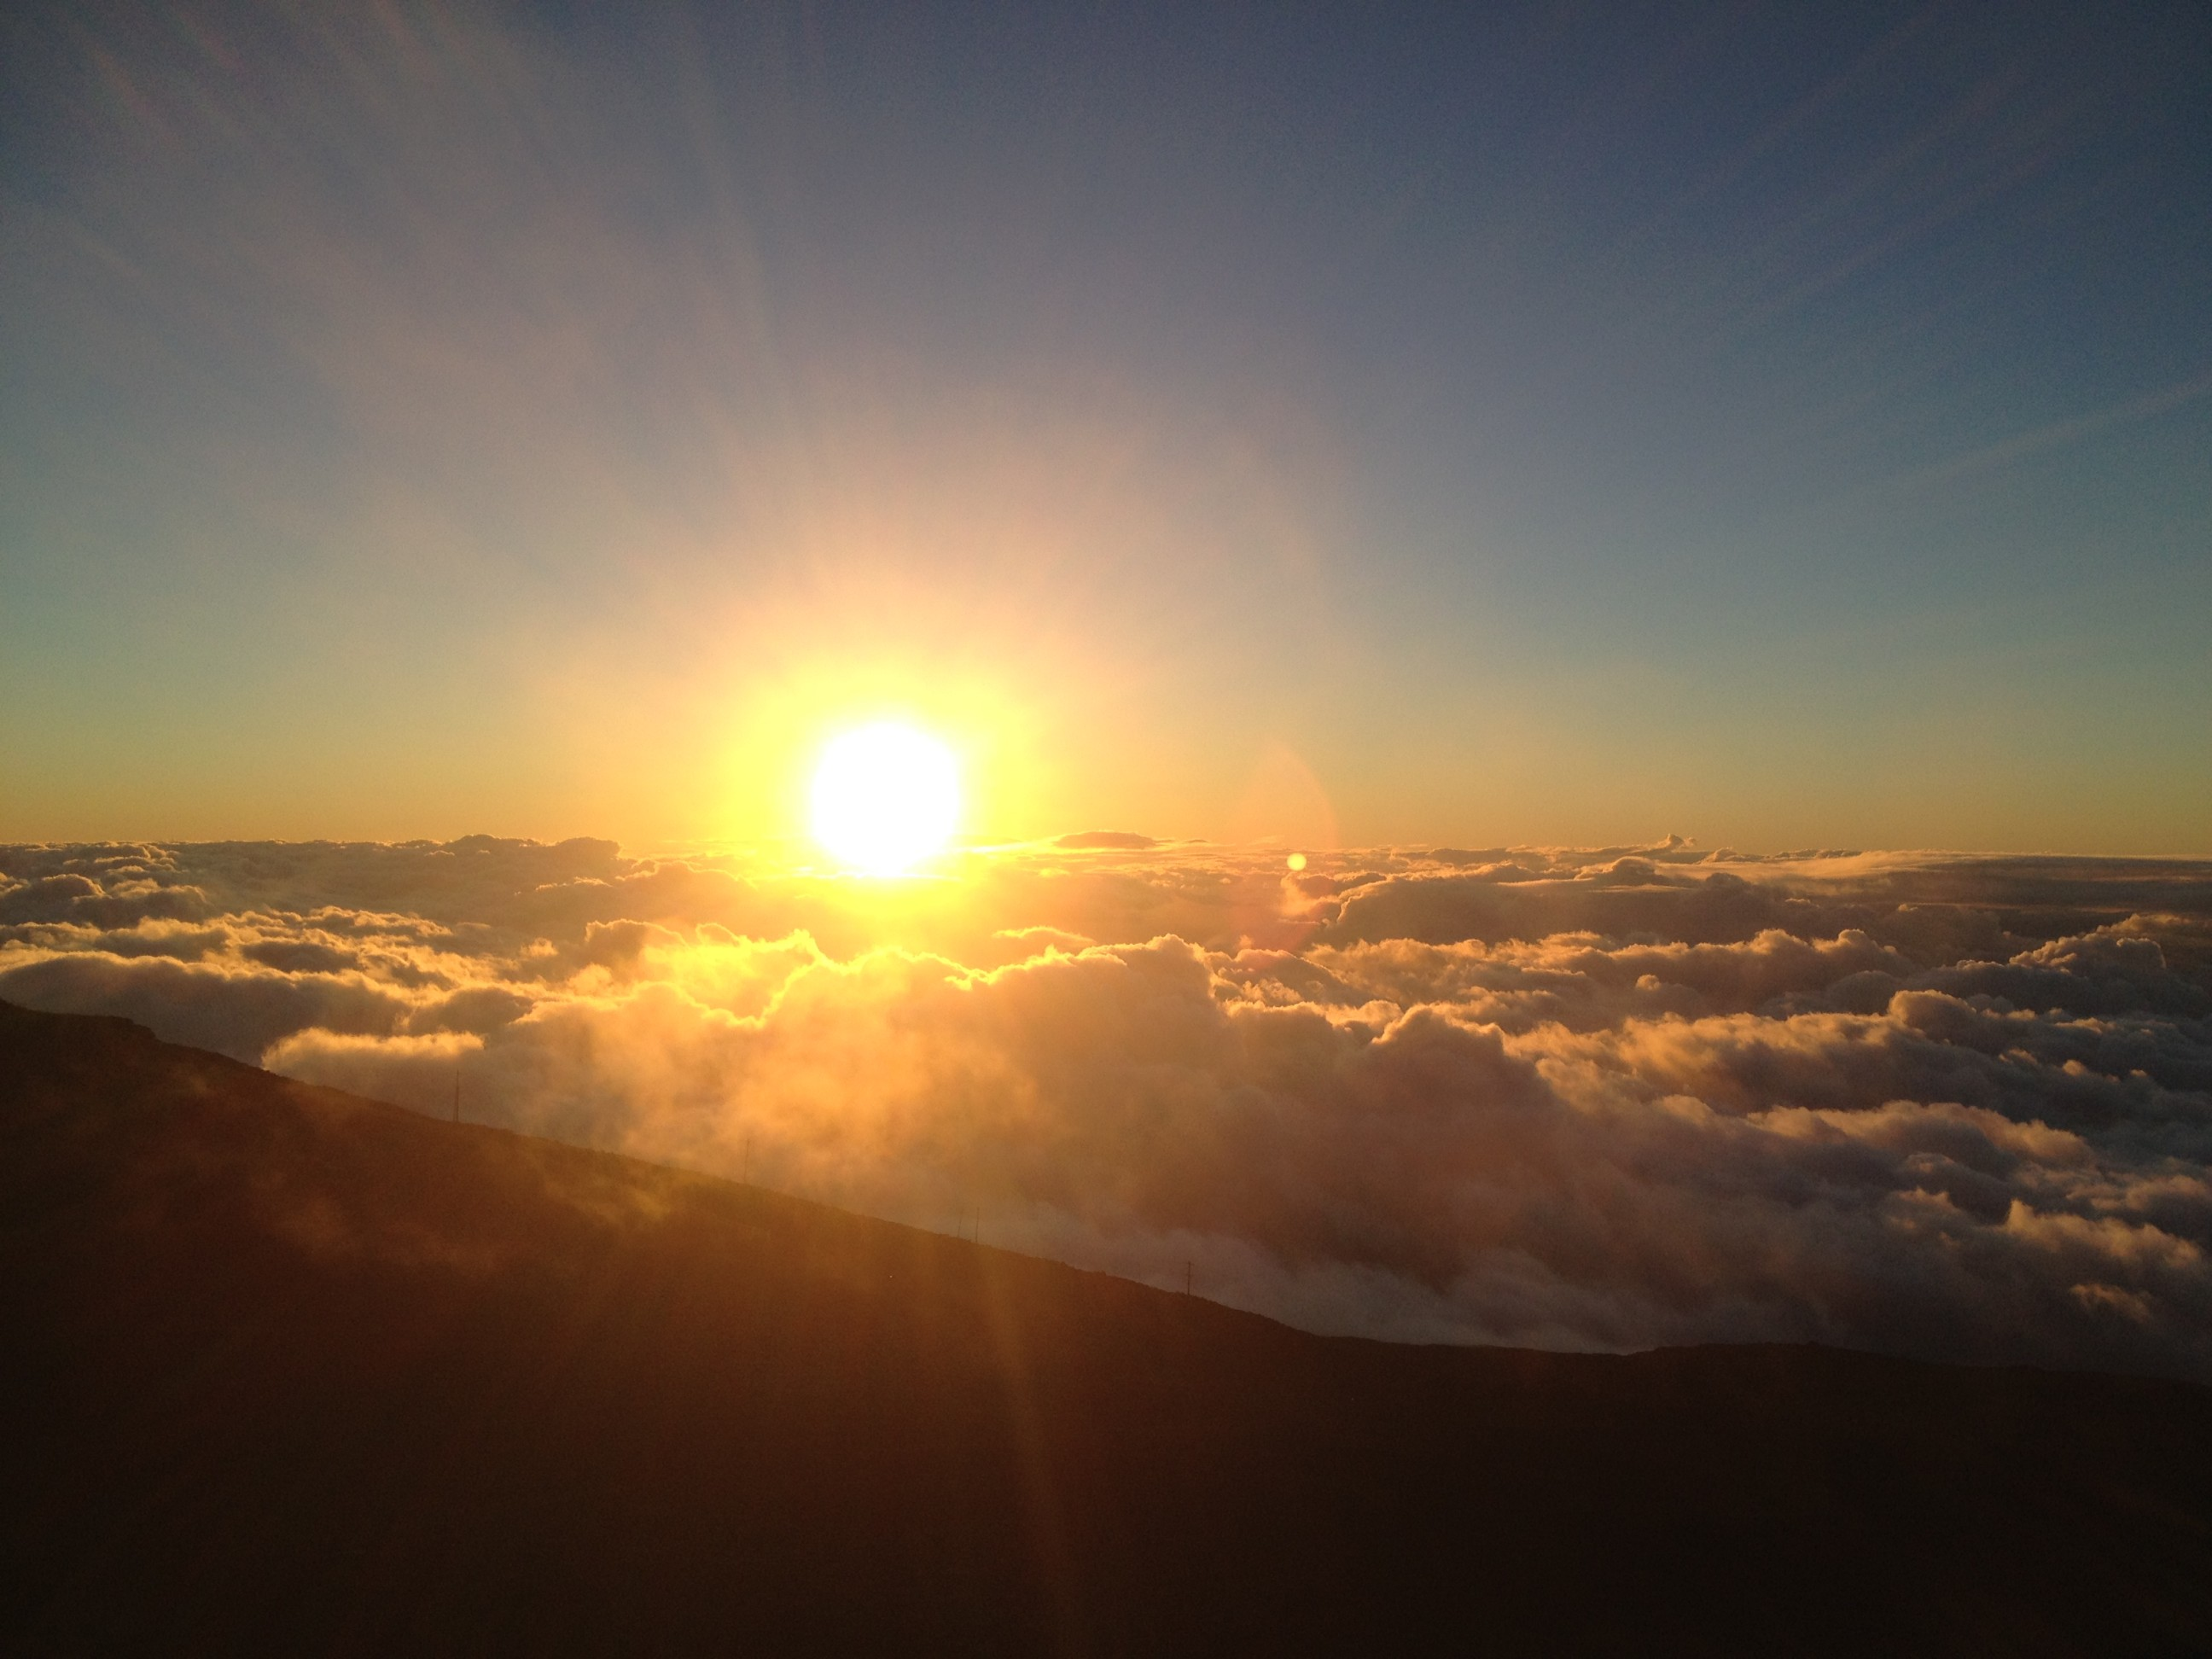 Sunset at Haleakala, Maui, Hawaii